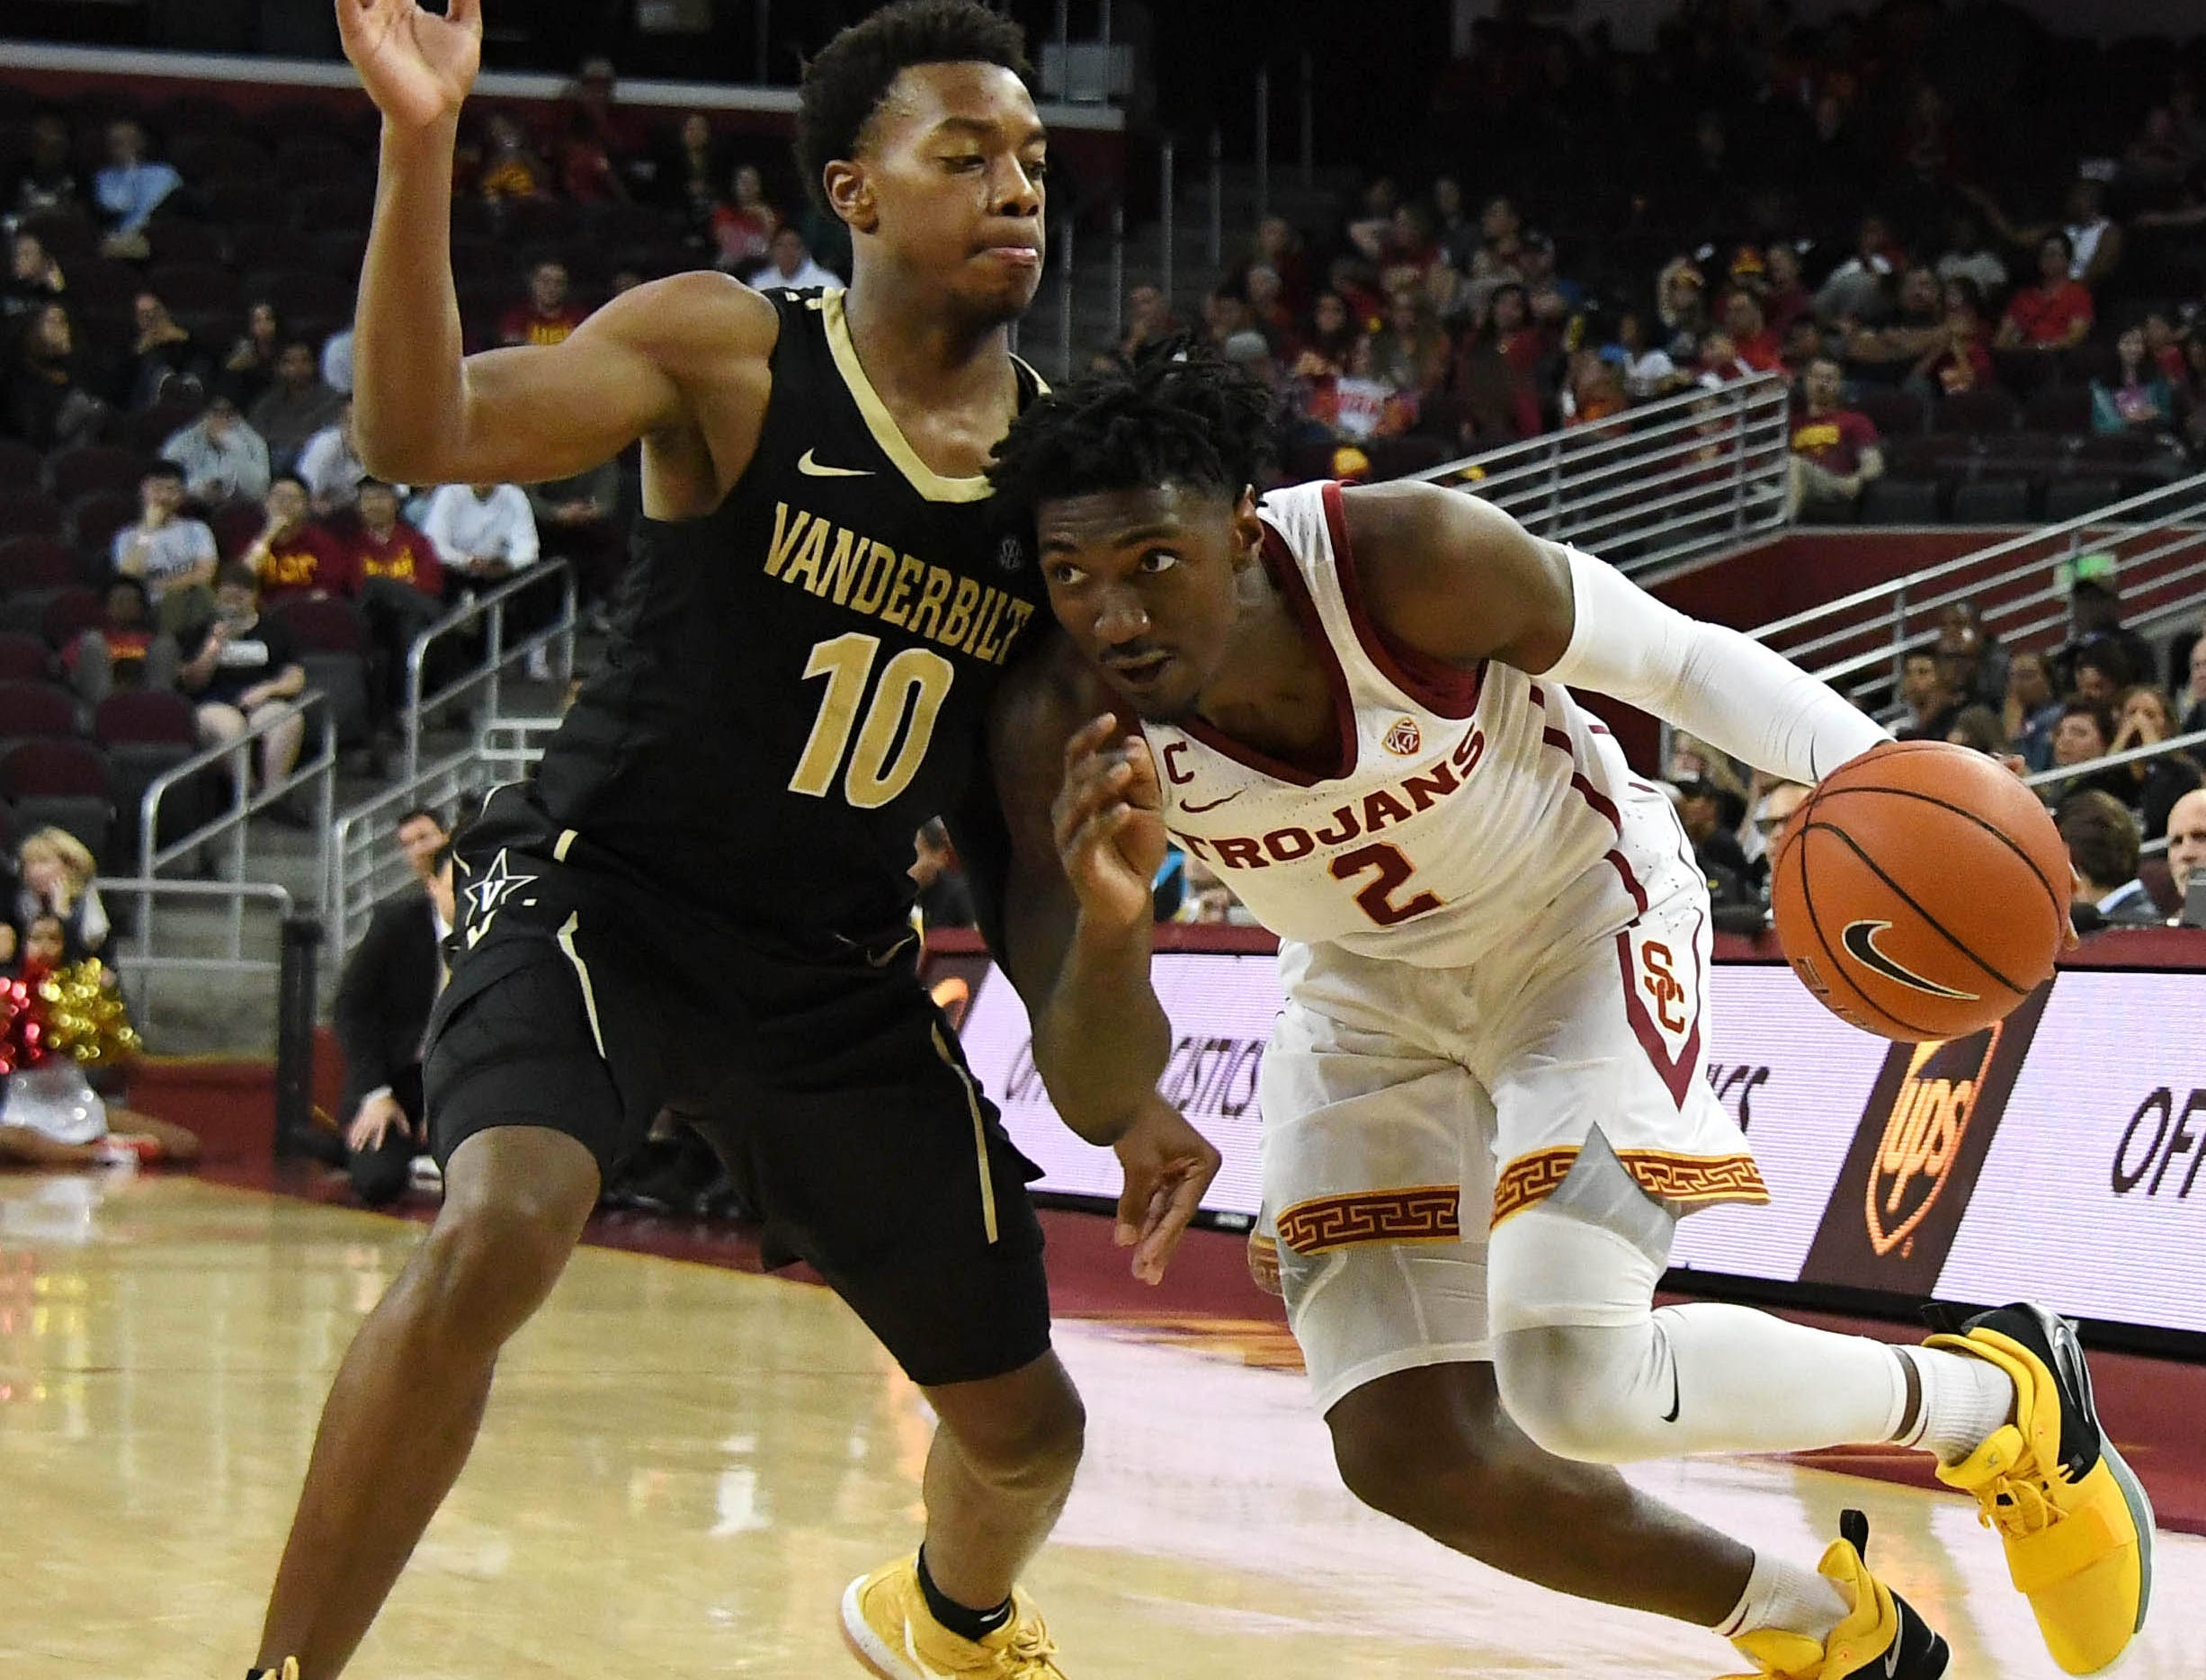 USA; Southern California Trojans guard Jonah Mathews (2) dribbles against Vanderbilt Commodores guard Darius Garland (10) in the second half at Galen Center.